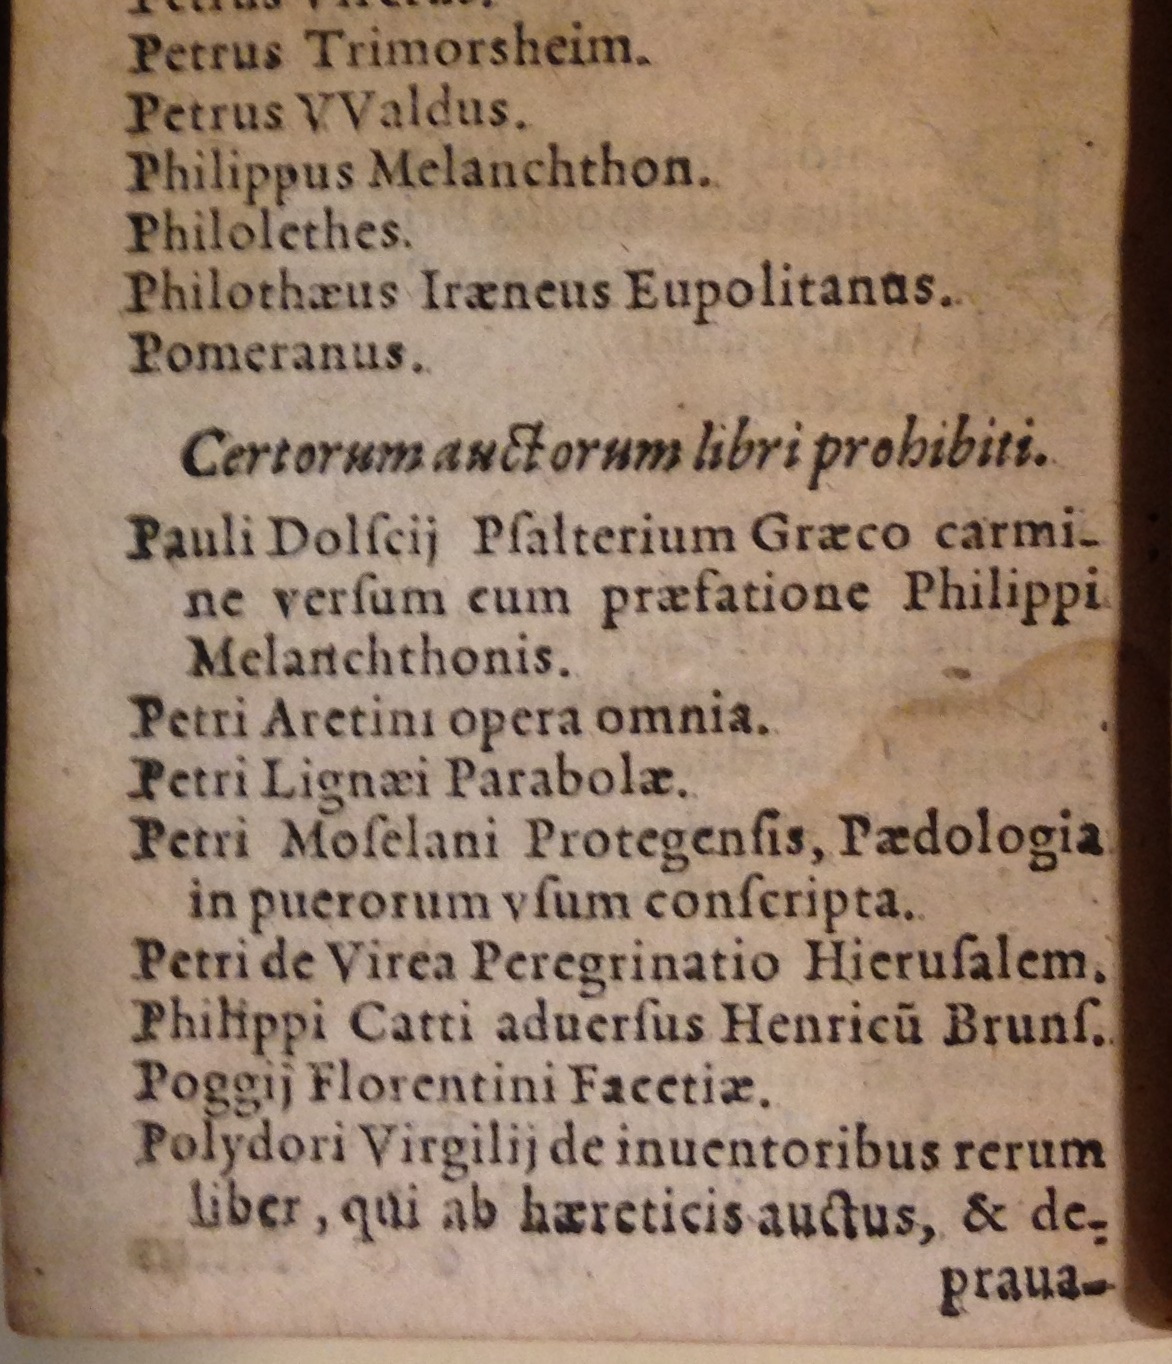 In bad company: Pietro Aretino joins Philipp Melanchthon, Poggio Bracciolini, and Polydore Vergil on the Roman Catholic Church's Index of prohibited books. This 1569 pocket edition of the Index Librorum Prohibitorum was issued in Cologne.     (BX830 1545 .A2 1569)